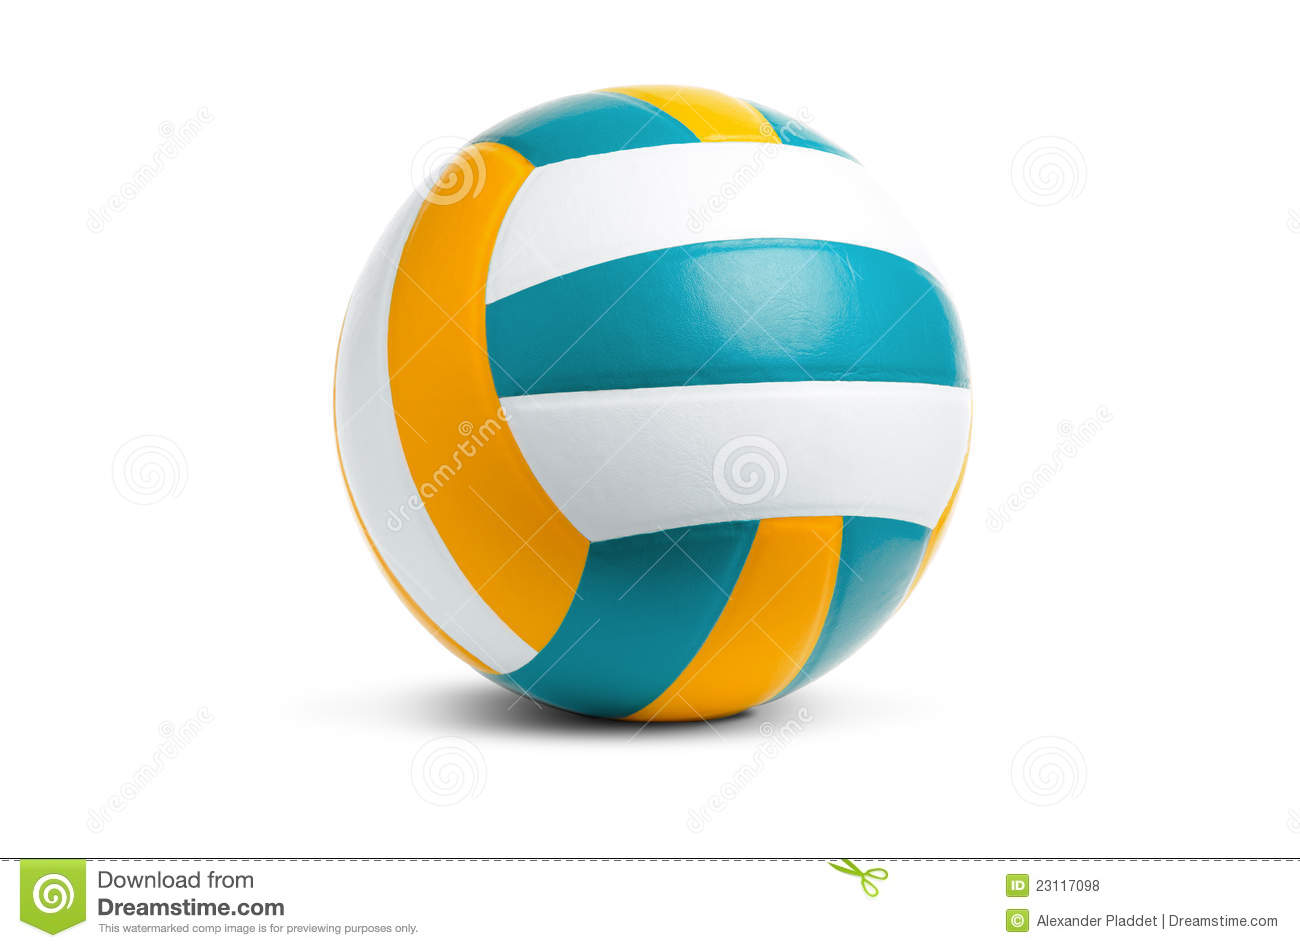 Background Abstract Volleyball Blue Yellow Ball Frame: Volleyball Royalty Free Stock Photos